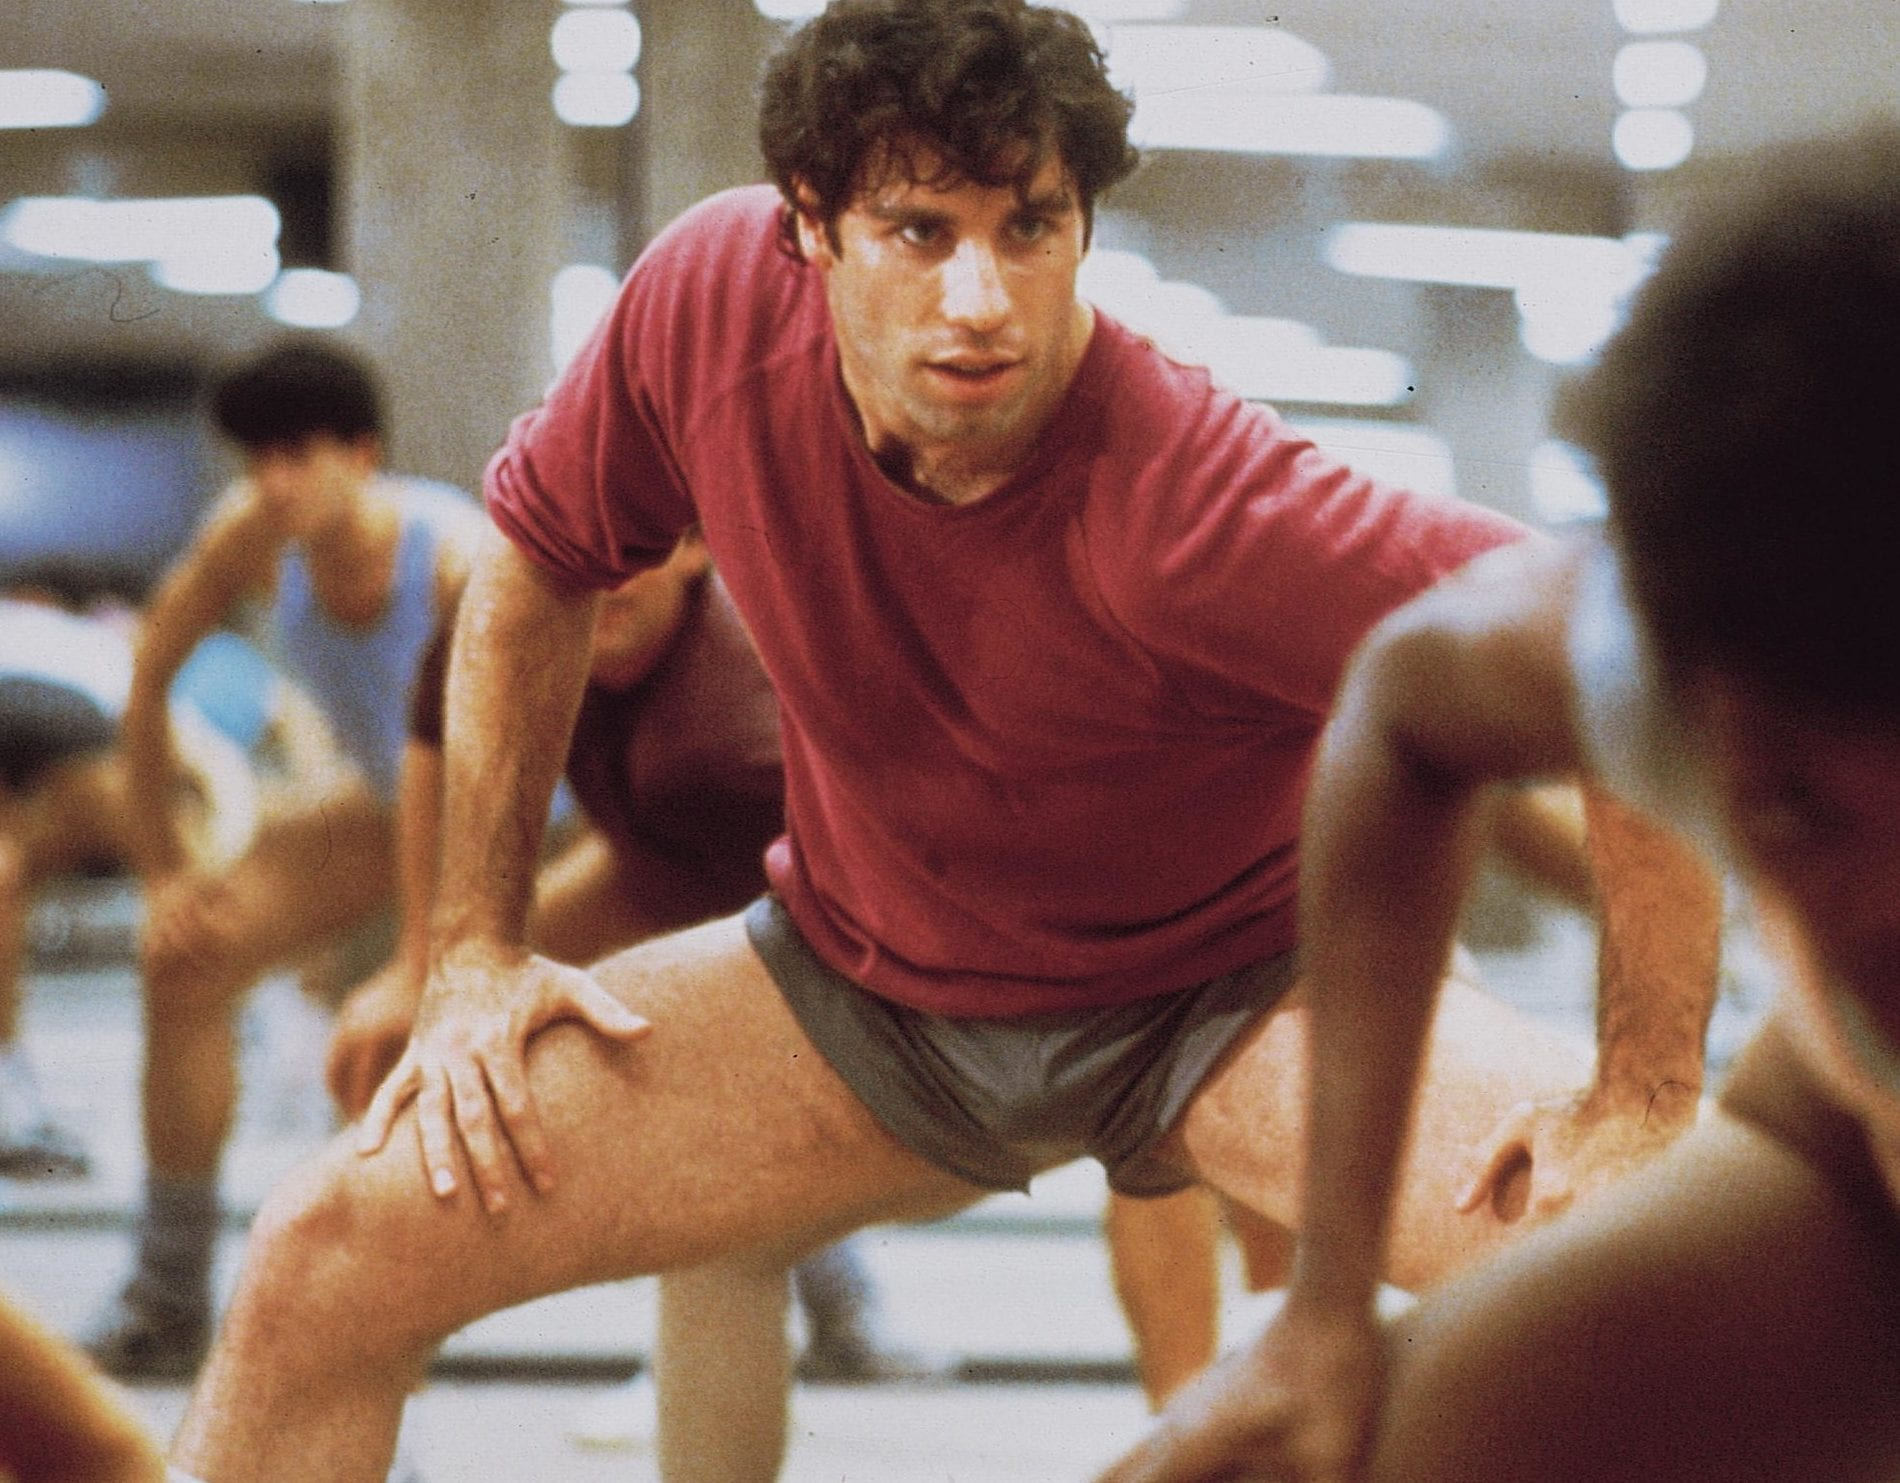 80s Fitness Stars: Where Did They End Up?